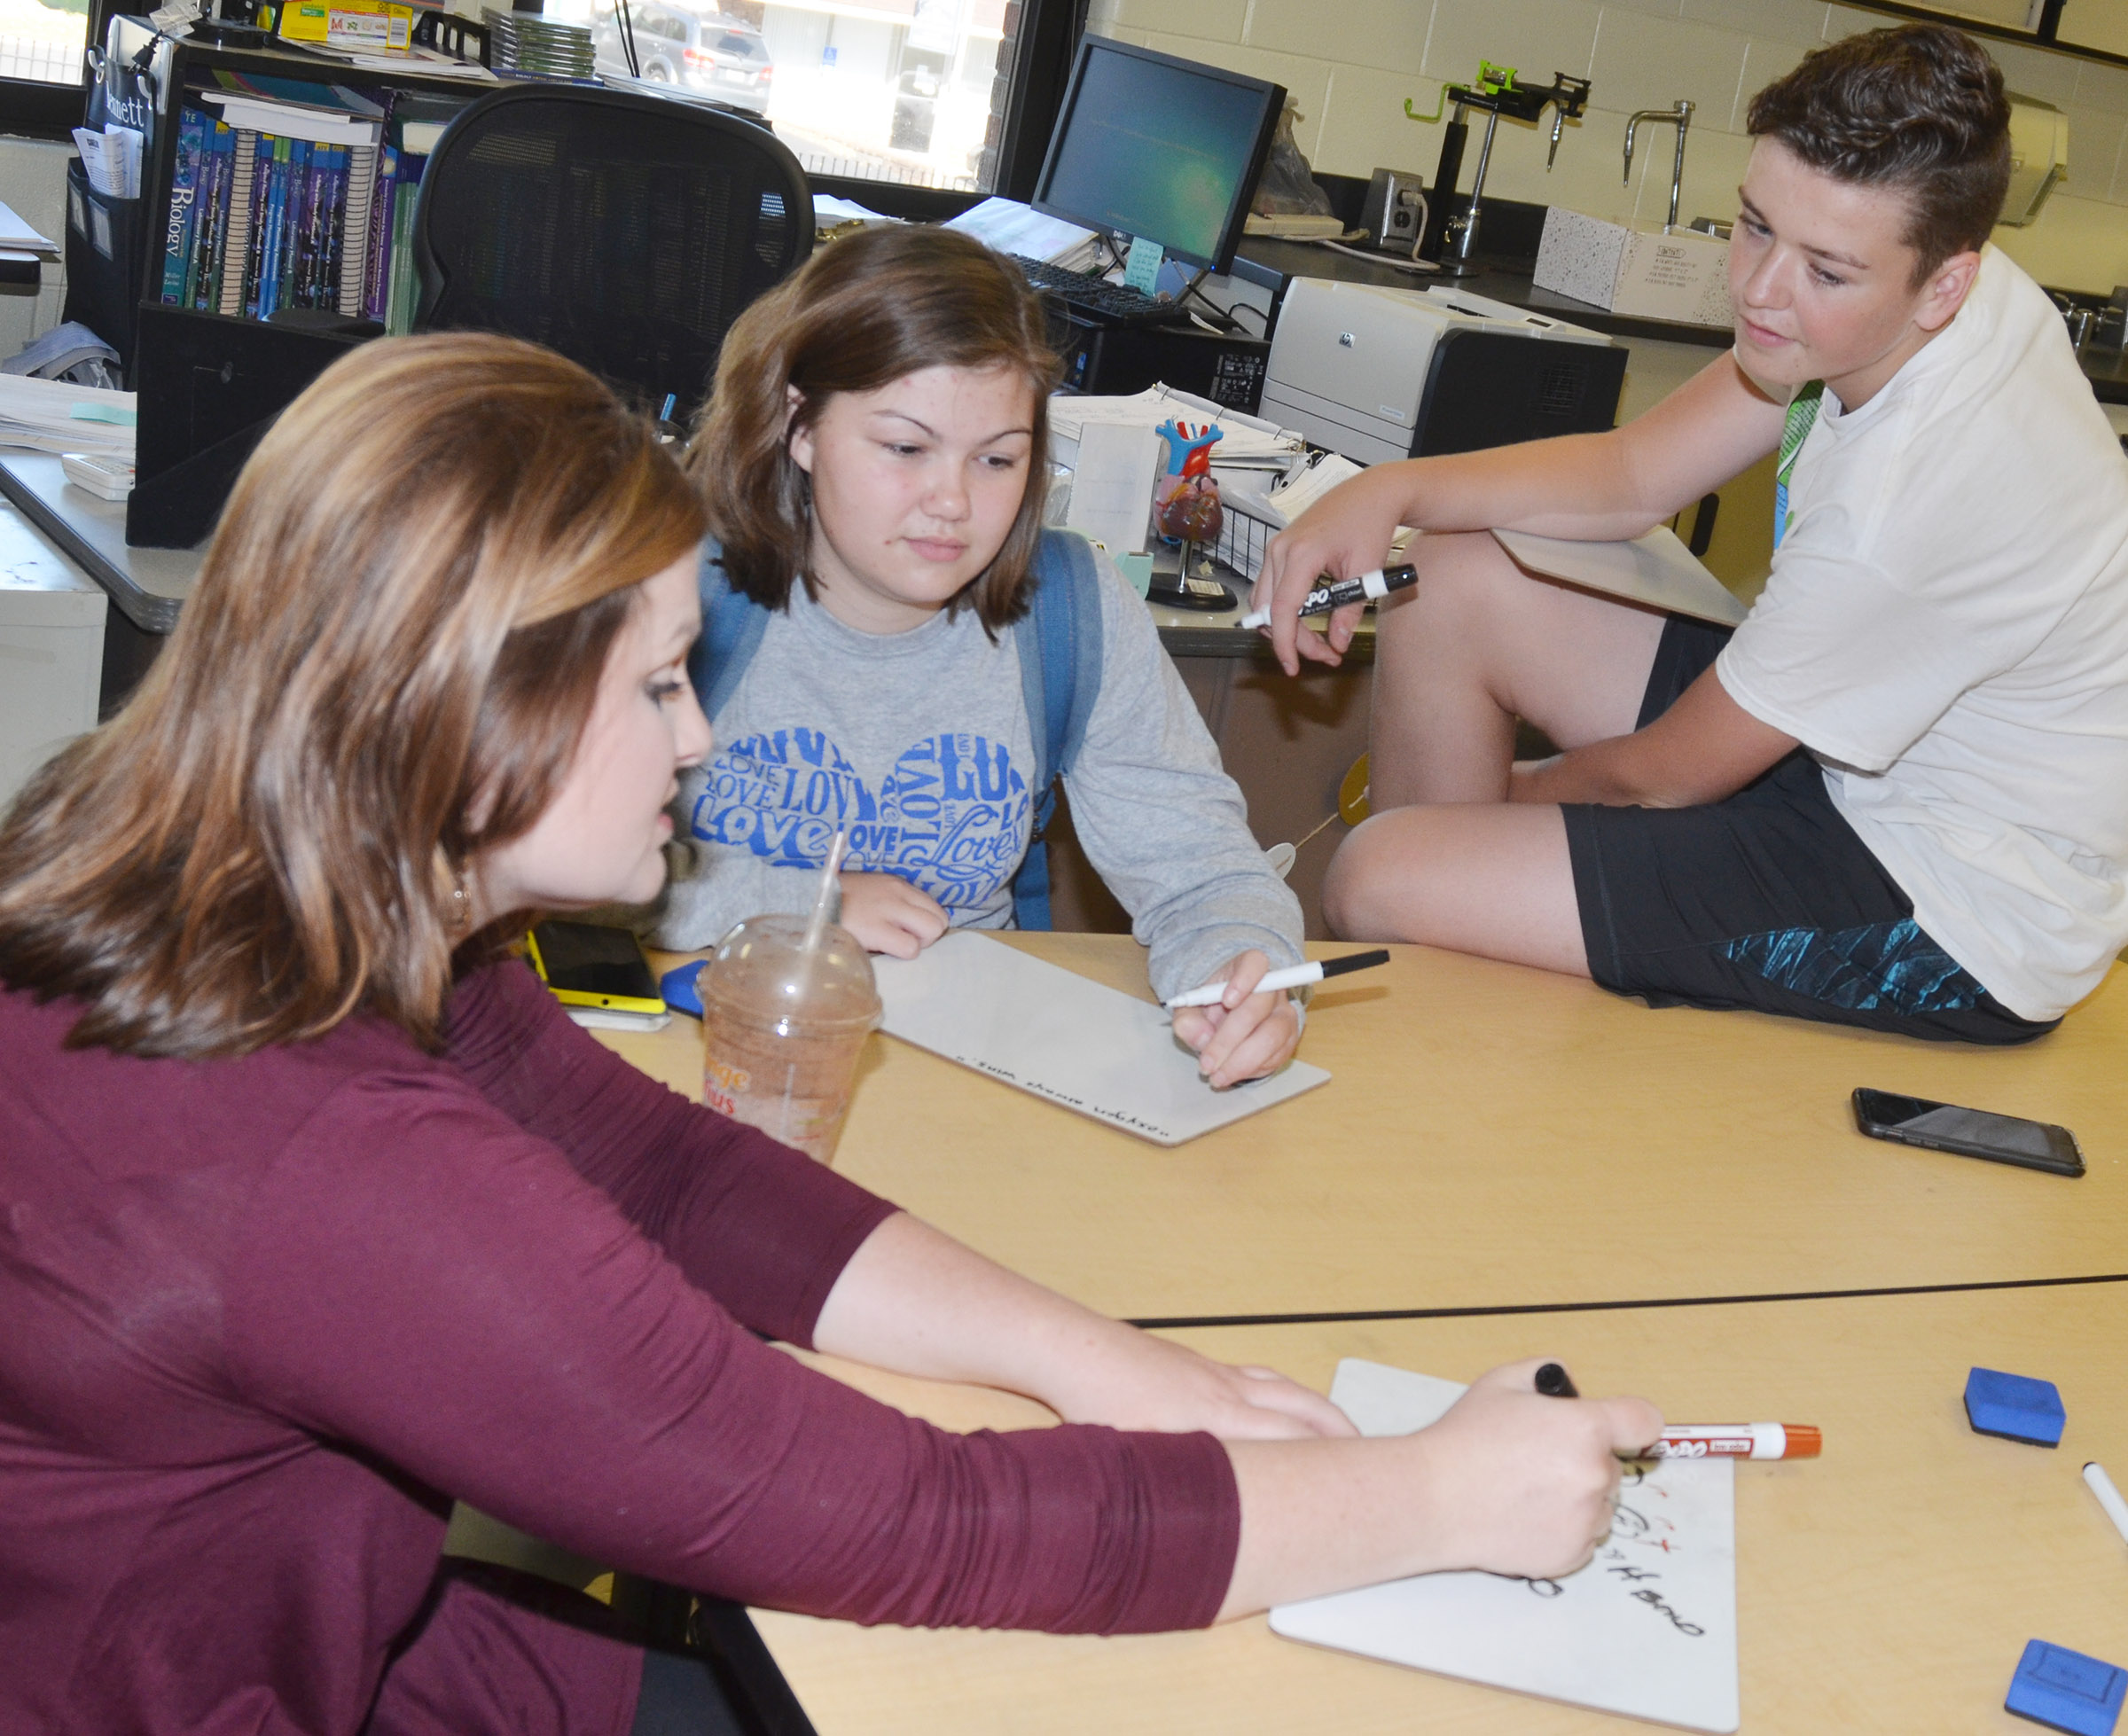 CHS teacher Lauren Bennett helps sophomores Shelby Smith, at left, and Gavin Johnson understand a science concept.